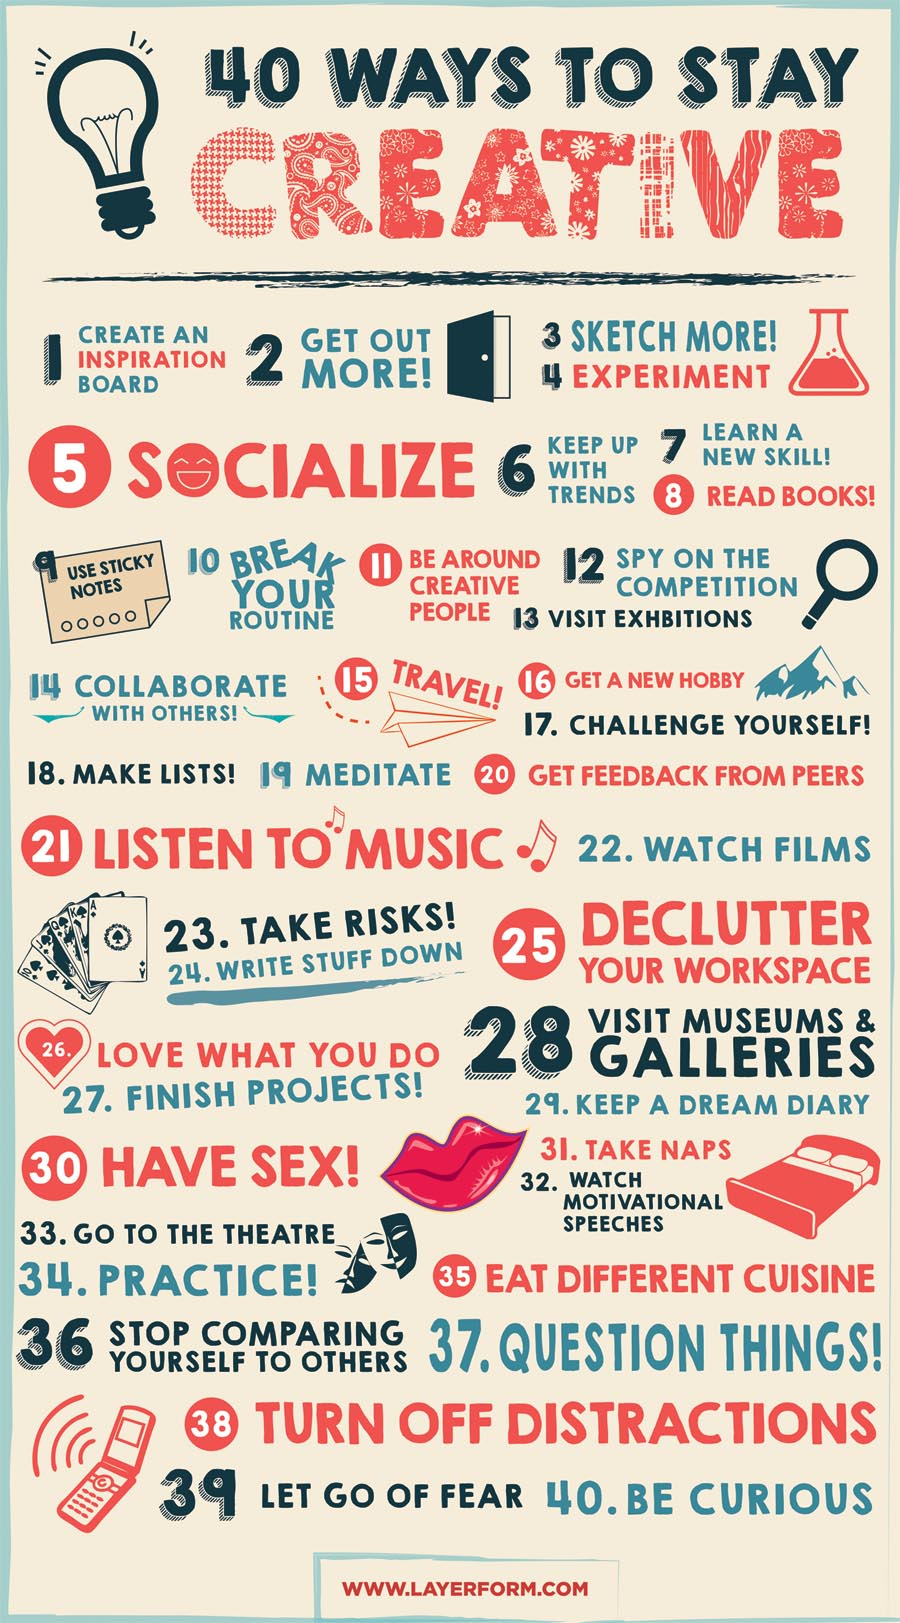 40-WAYS-TO-STAY-CREATIVE2